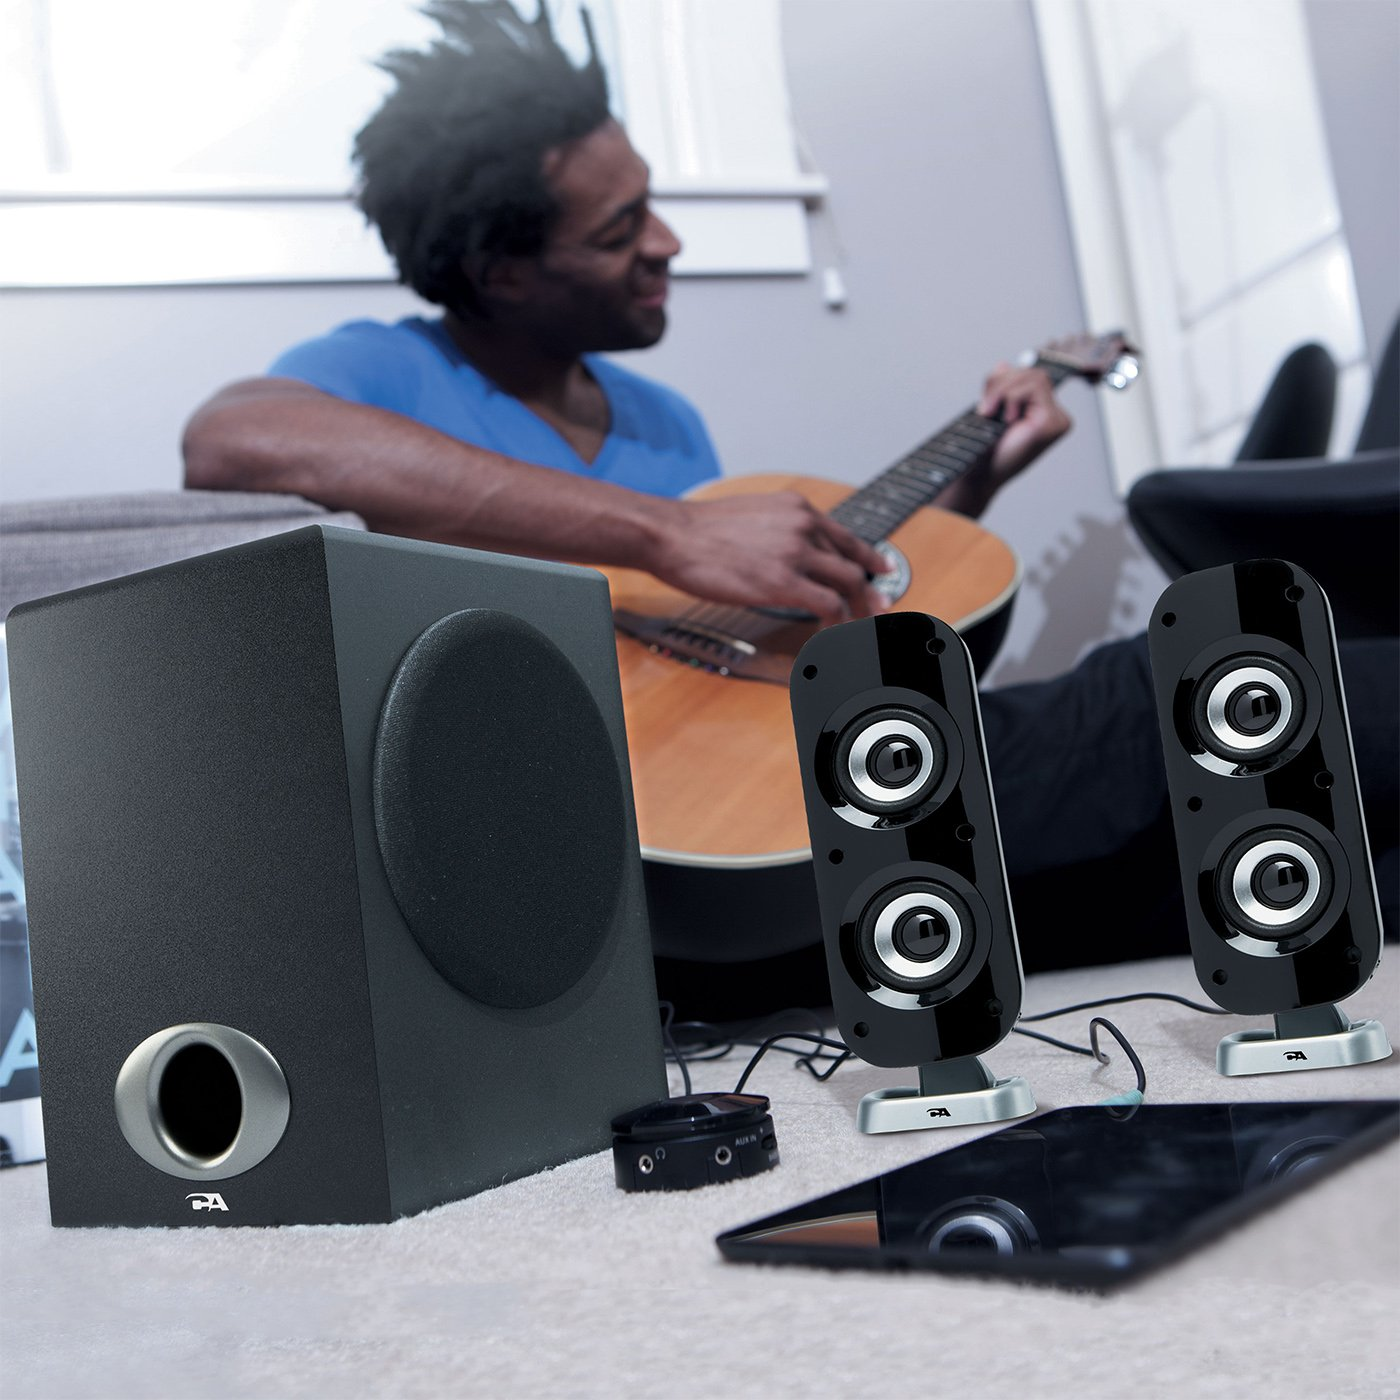 Cyber Acoustics High Power 2.1 Subwoofer Speaker System with 80W of Power – Perfect for Gaming, Movies, Music, and Multimedia Sound Solutions (CA-3810) by Cyber Acoustics (Image #7)